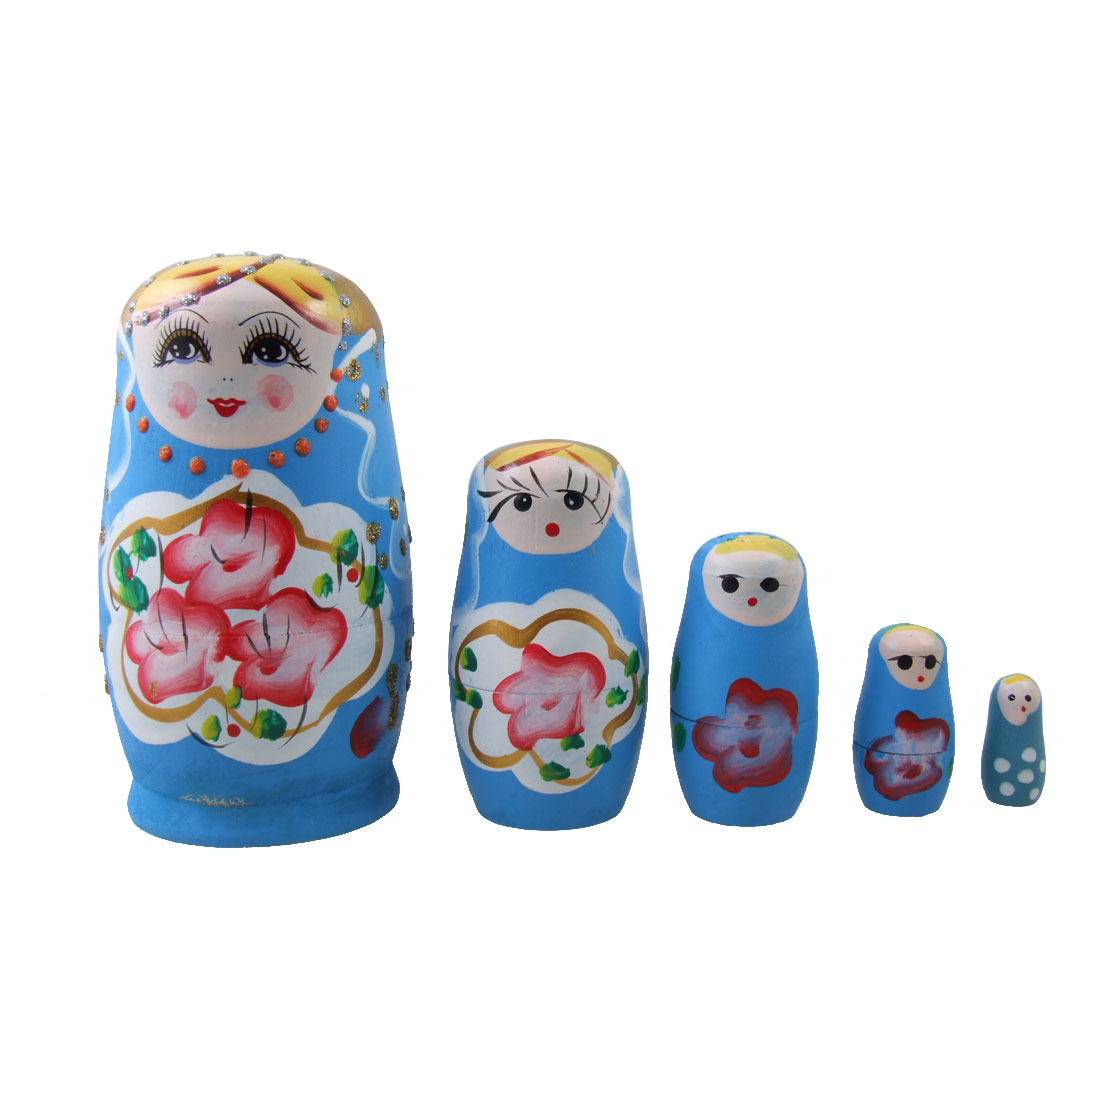 5 Pcs Wooden Blue Painting Nesting Russian Dolls